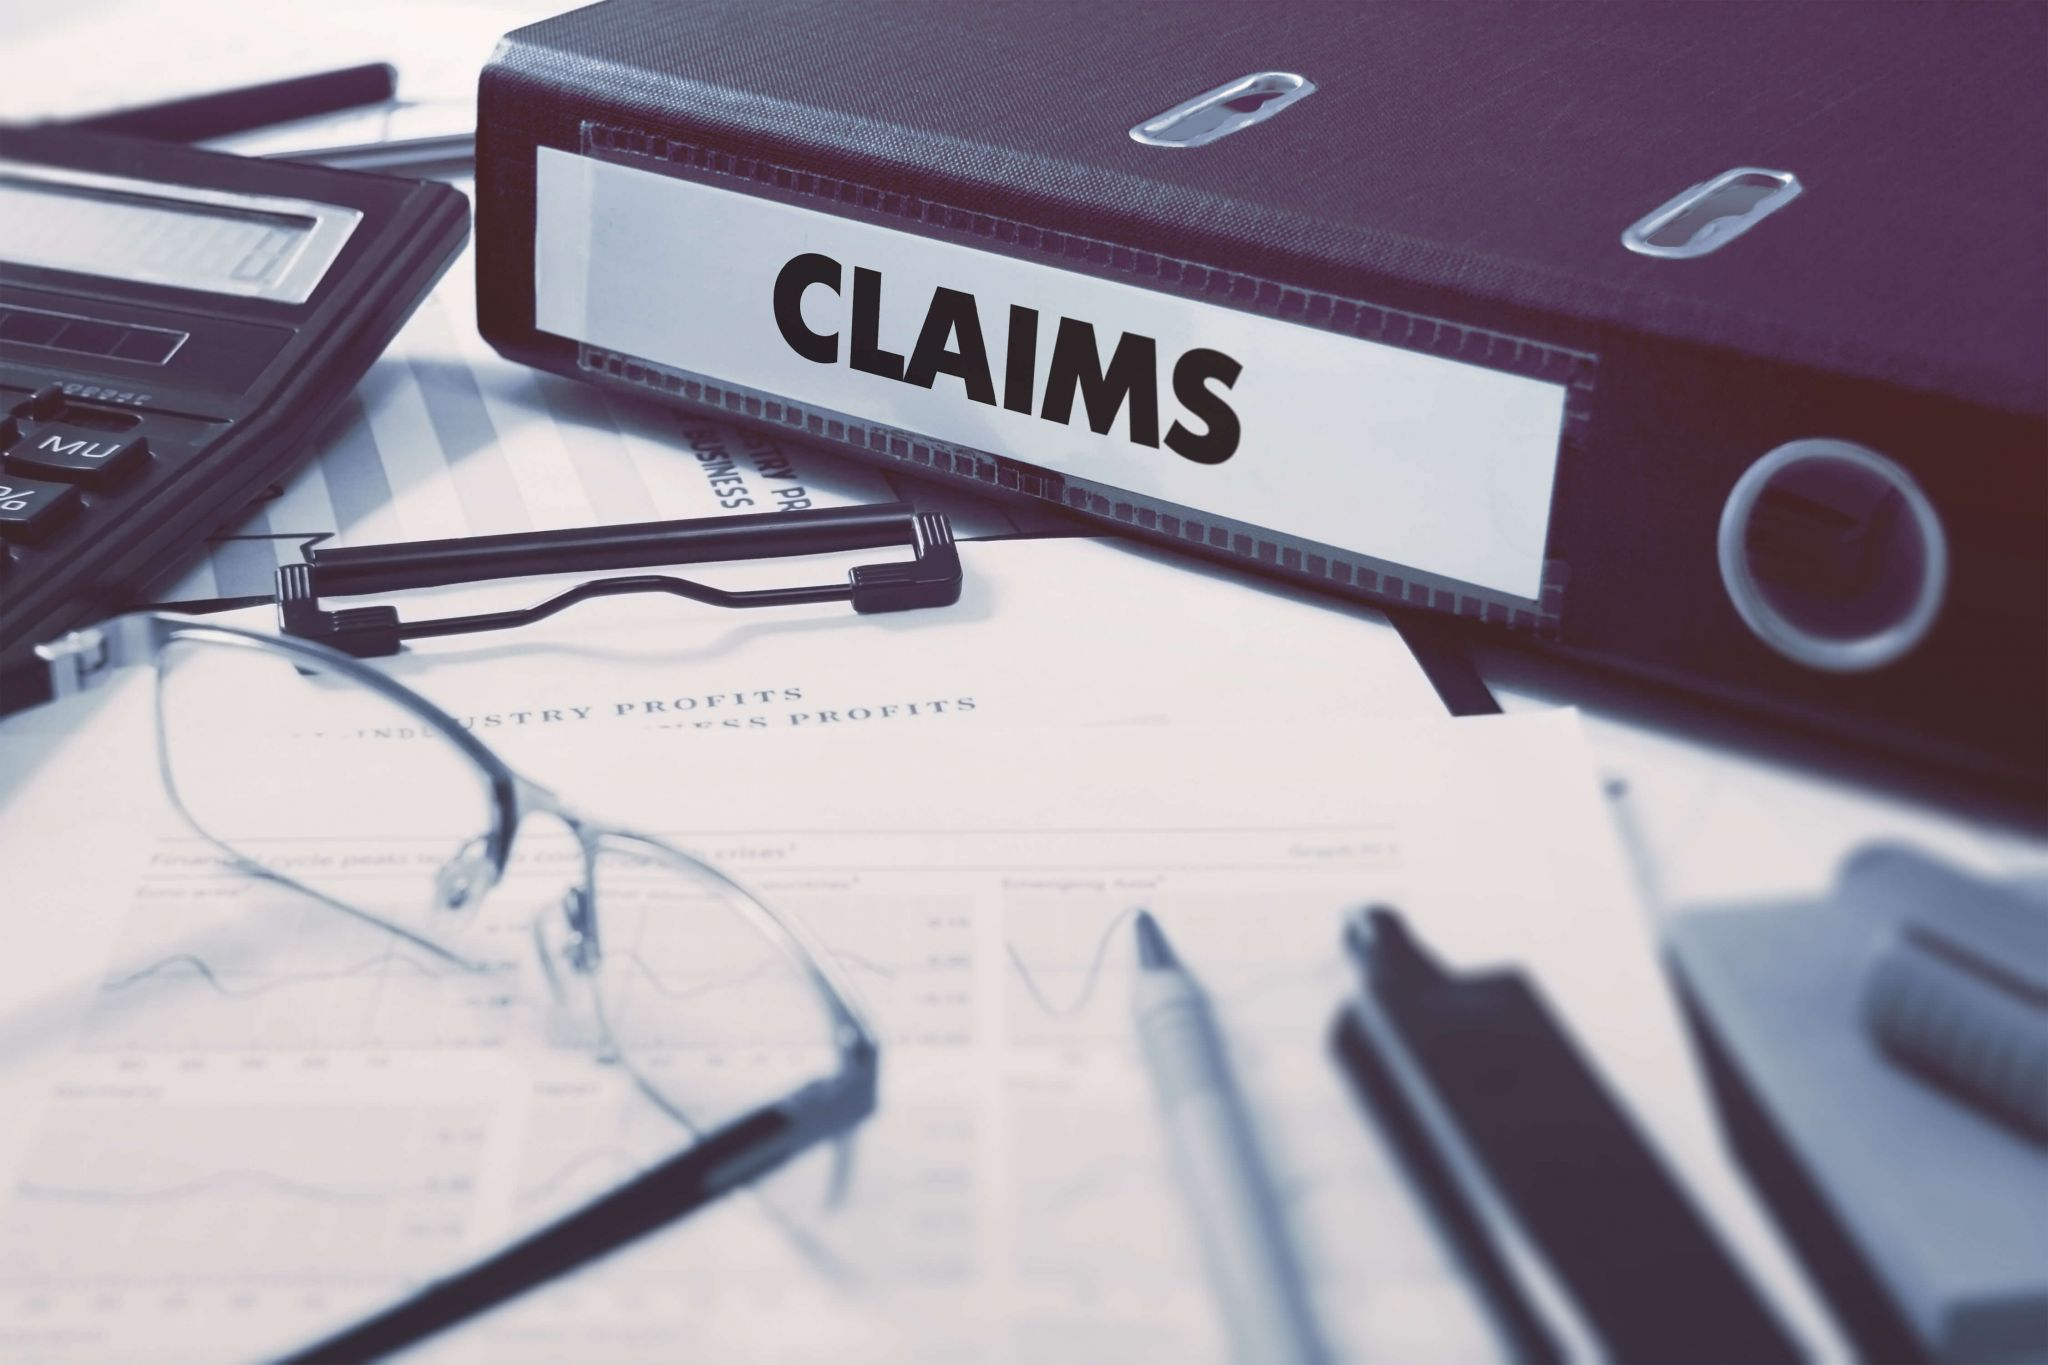 Plevin & PPI Claims - claims form folder and glasses on desk